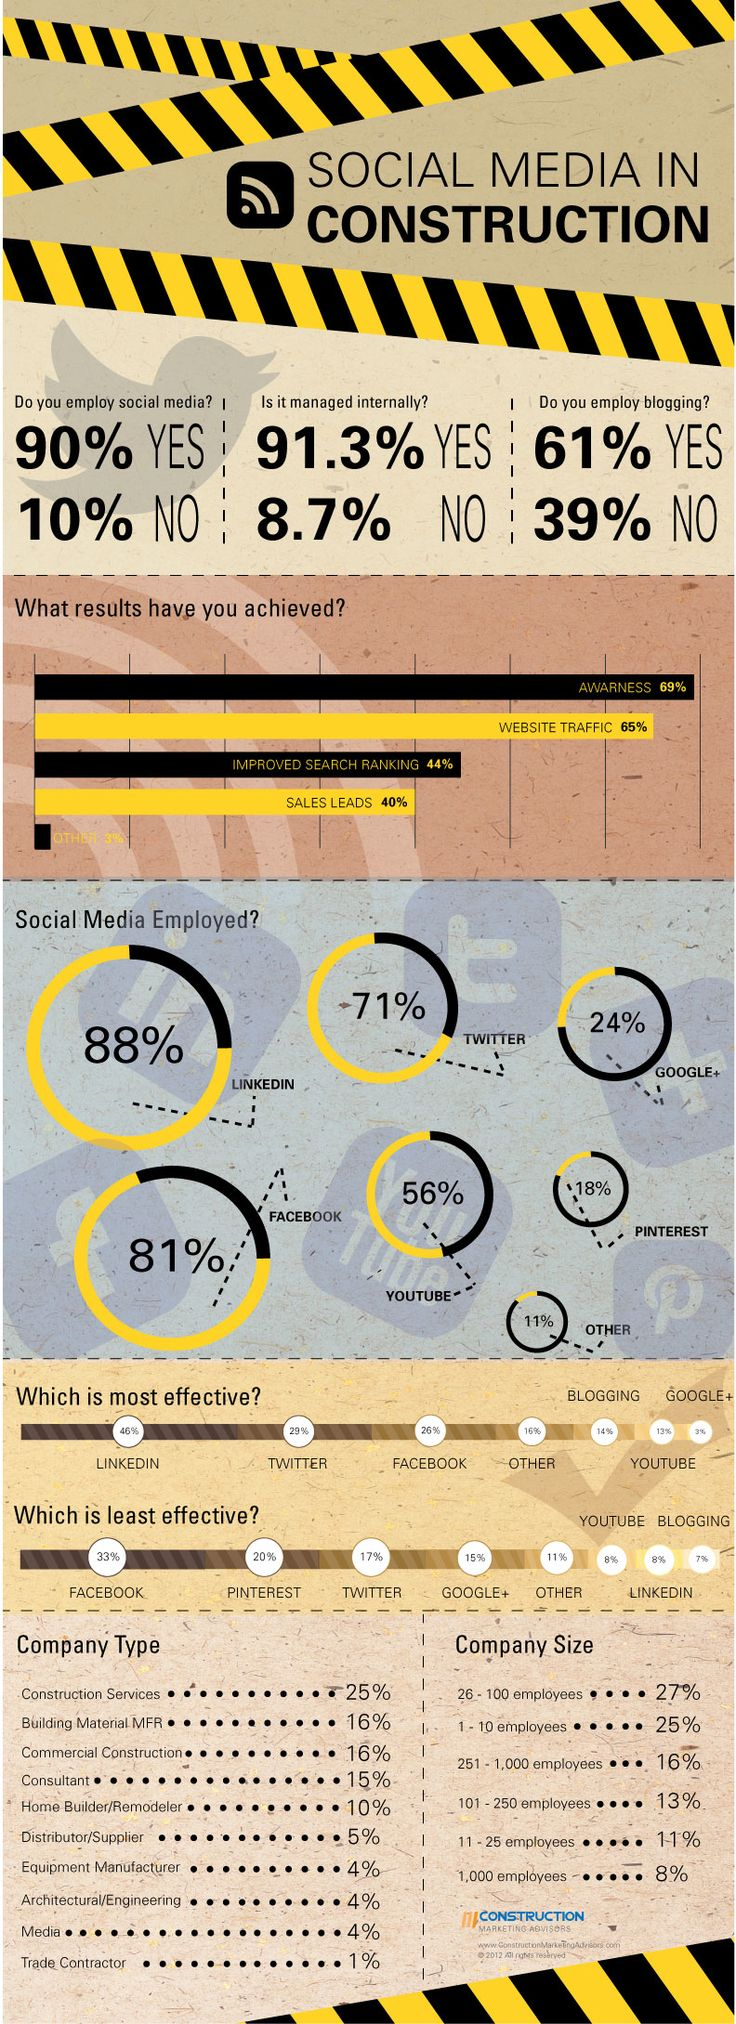 How the Construction business is using social media.